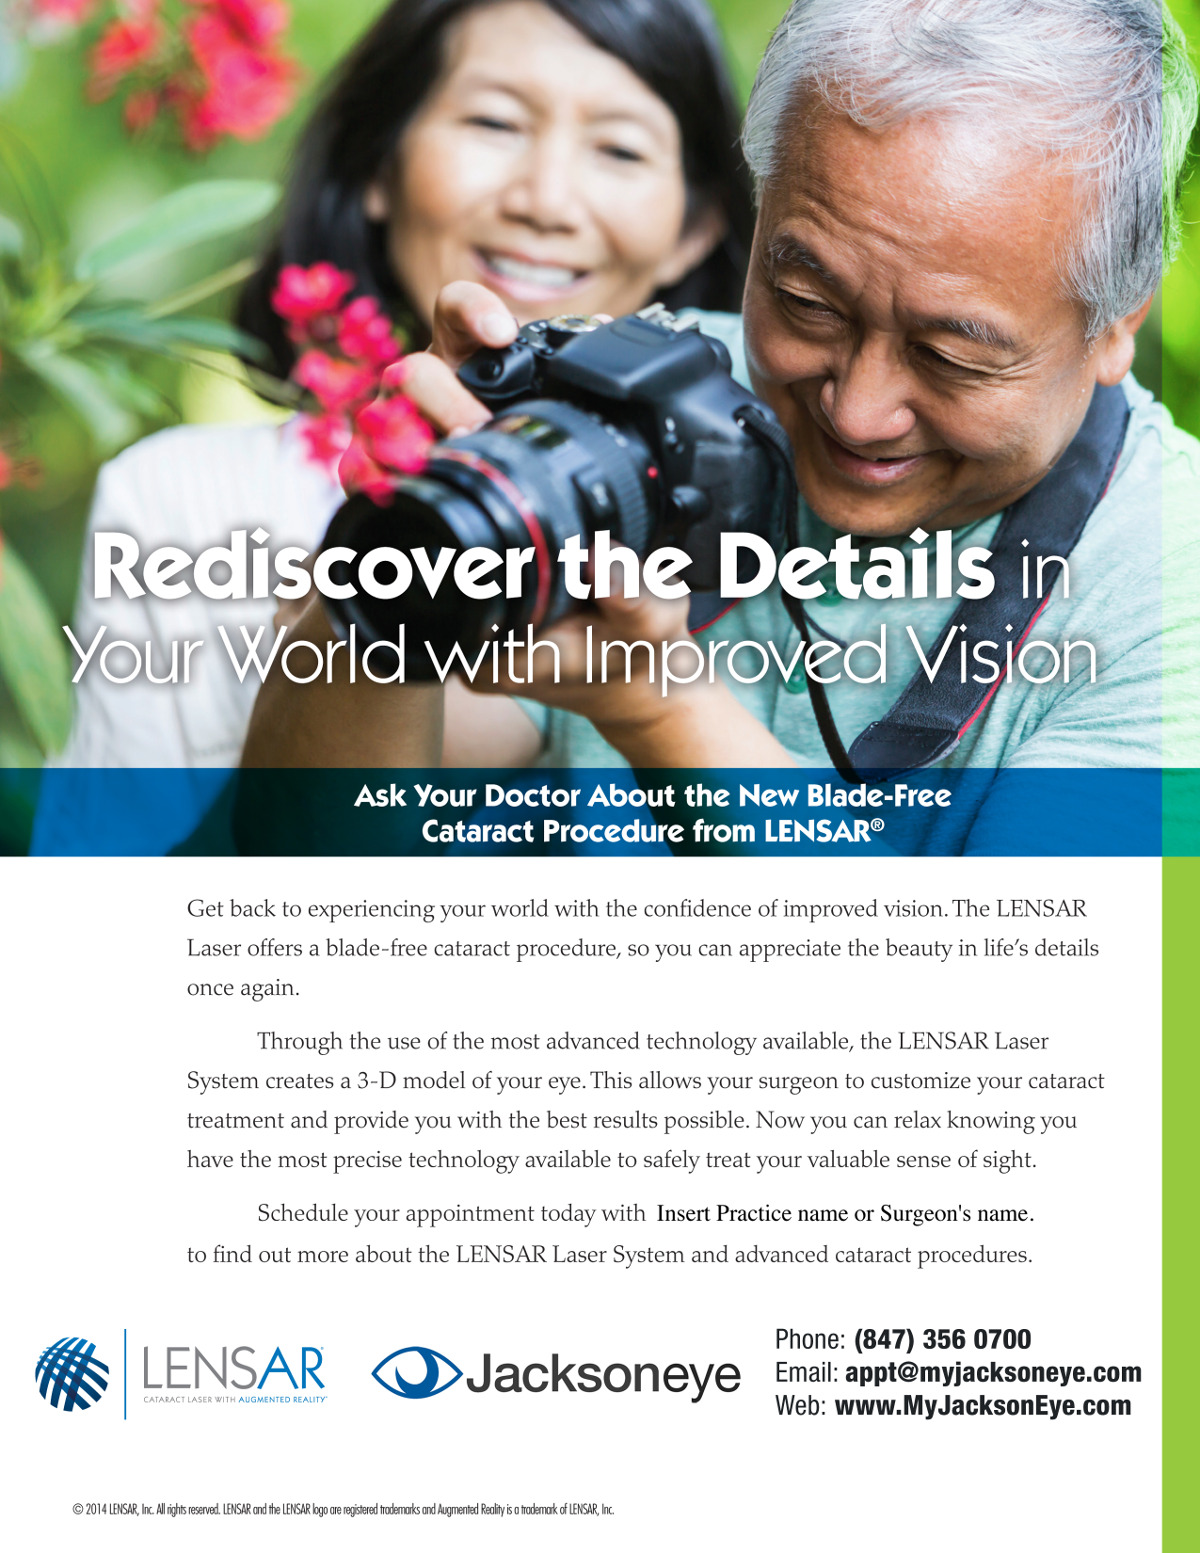 Jacksoneye LENSAR Cataract Surgery Ad with a couple taking pictures with a dslr